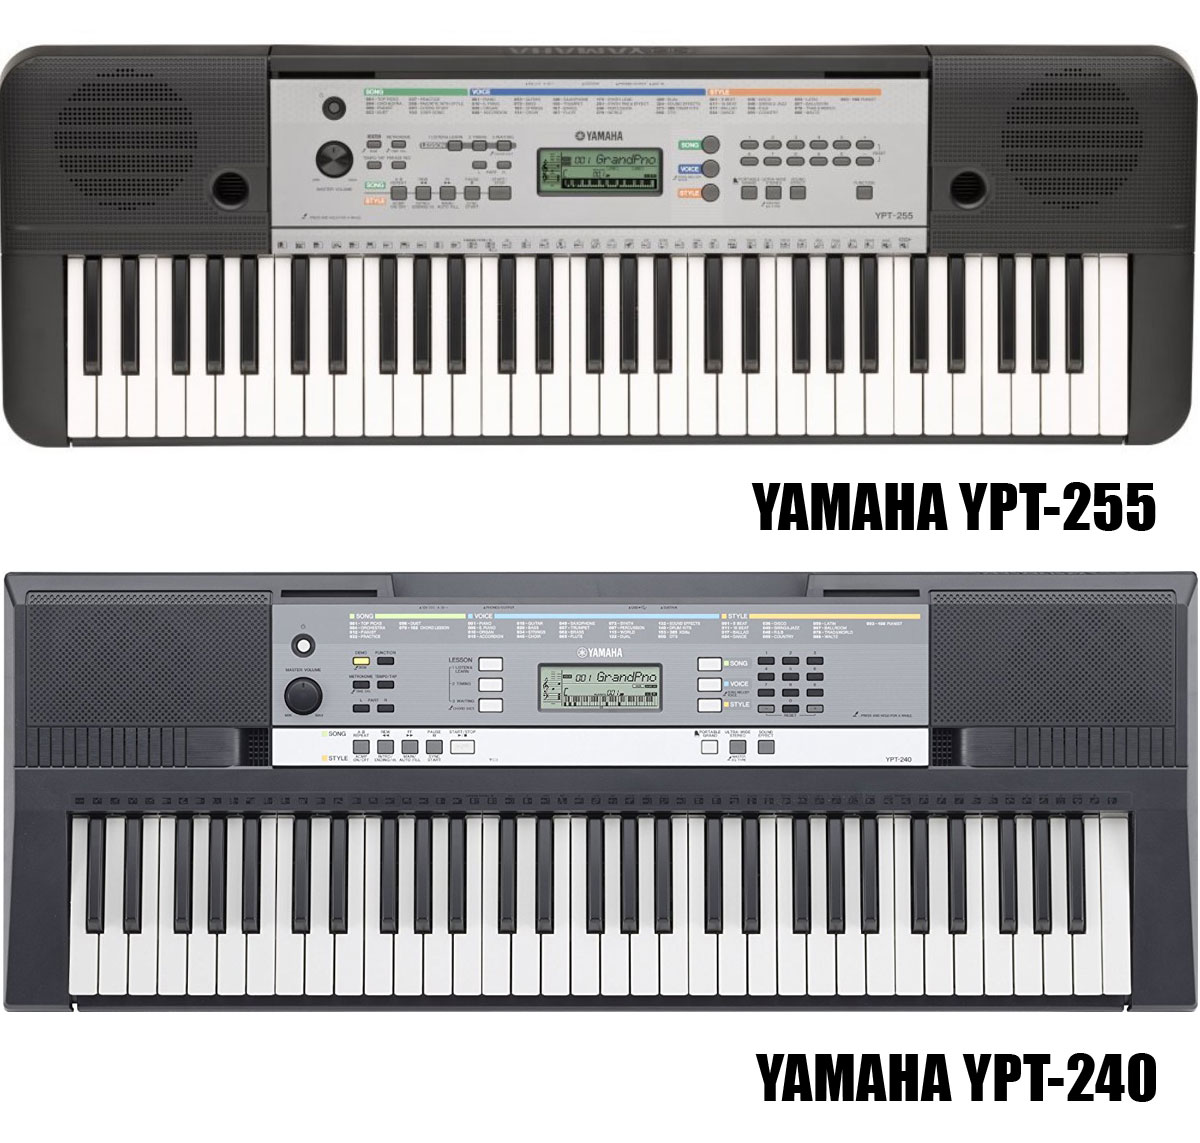 yamaha ypt 240 review 2018 fun features for beginners. Black Bedroom Furniture Sets. Home Design Ideas